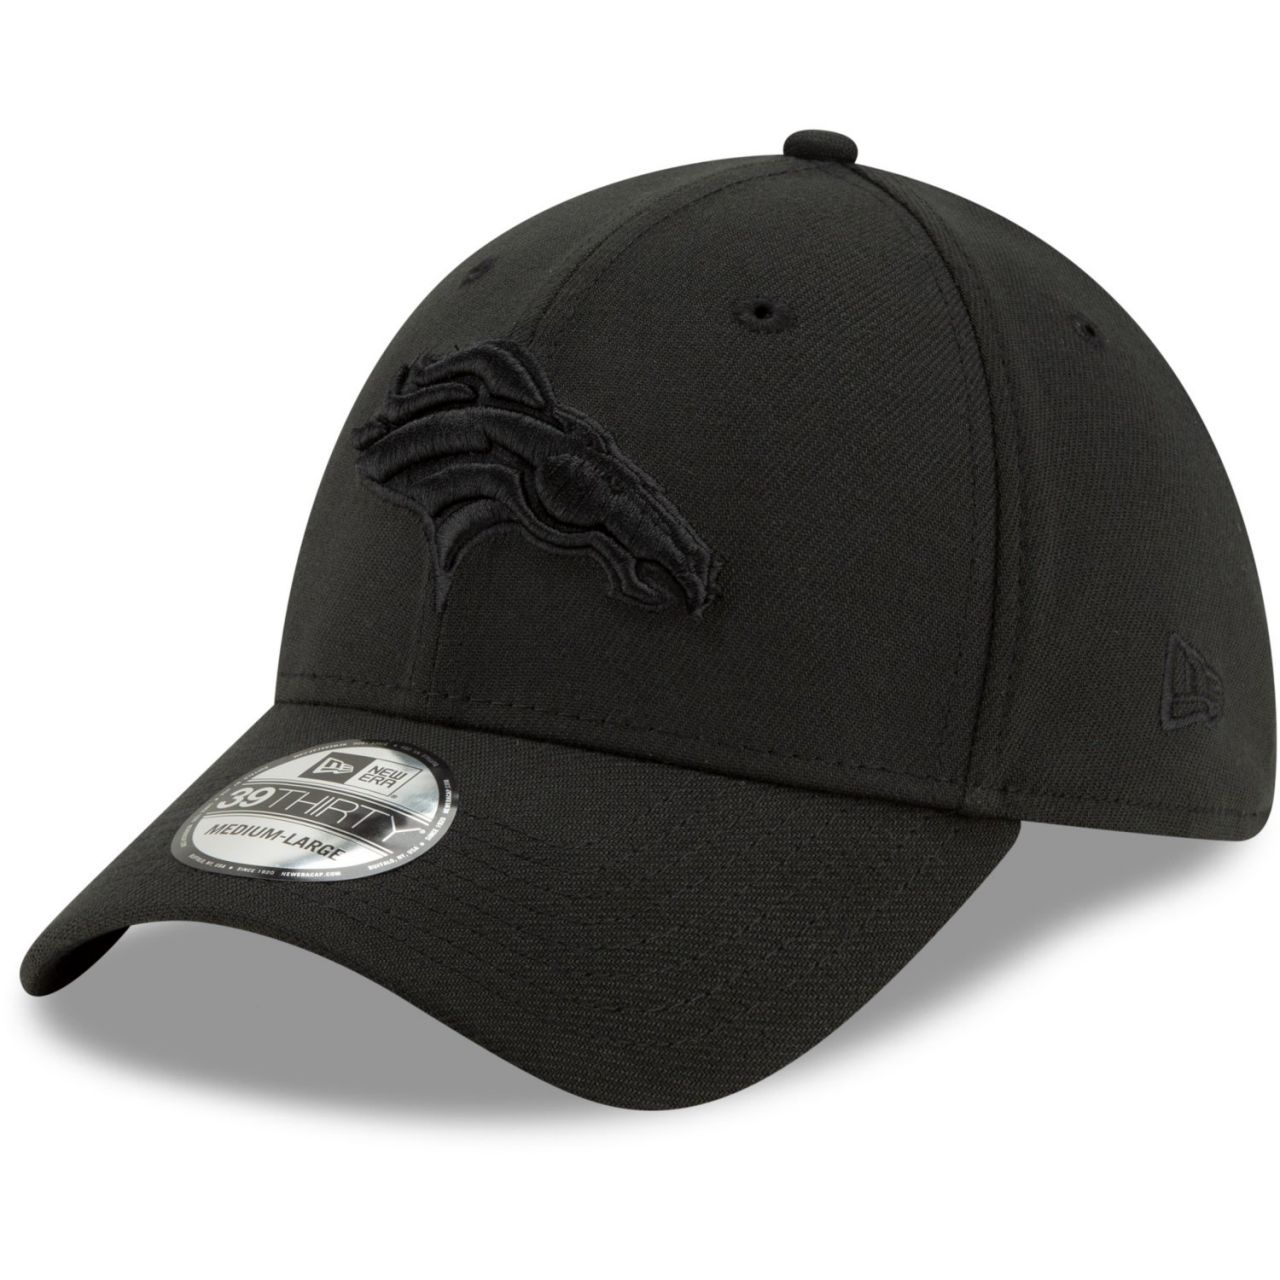 amfoo - New Era 39Thirty Stretch Cap - NFL Denver Broncos